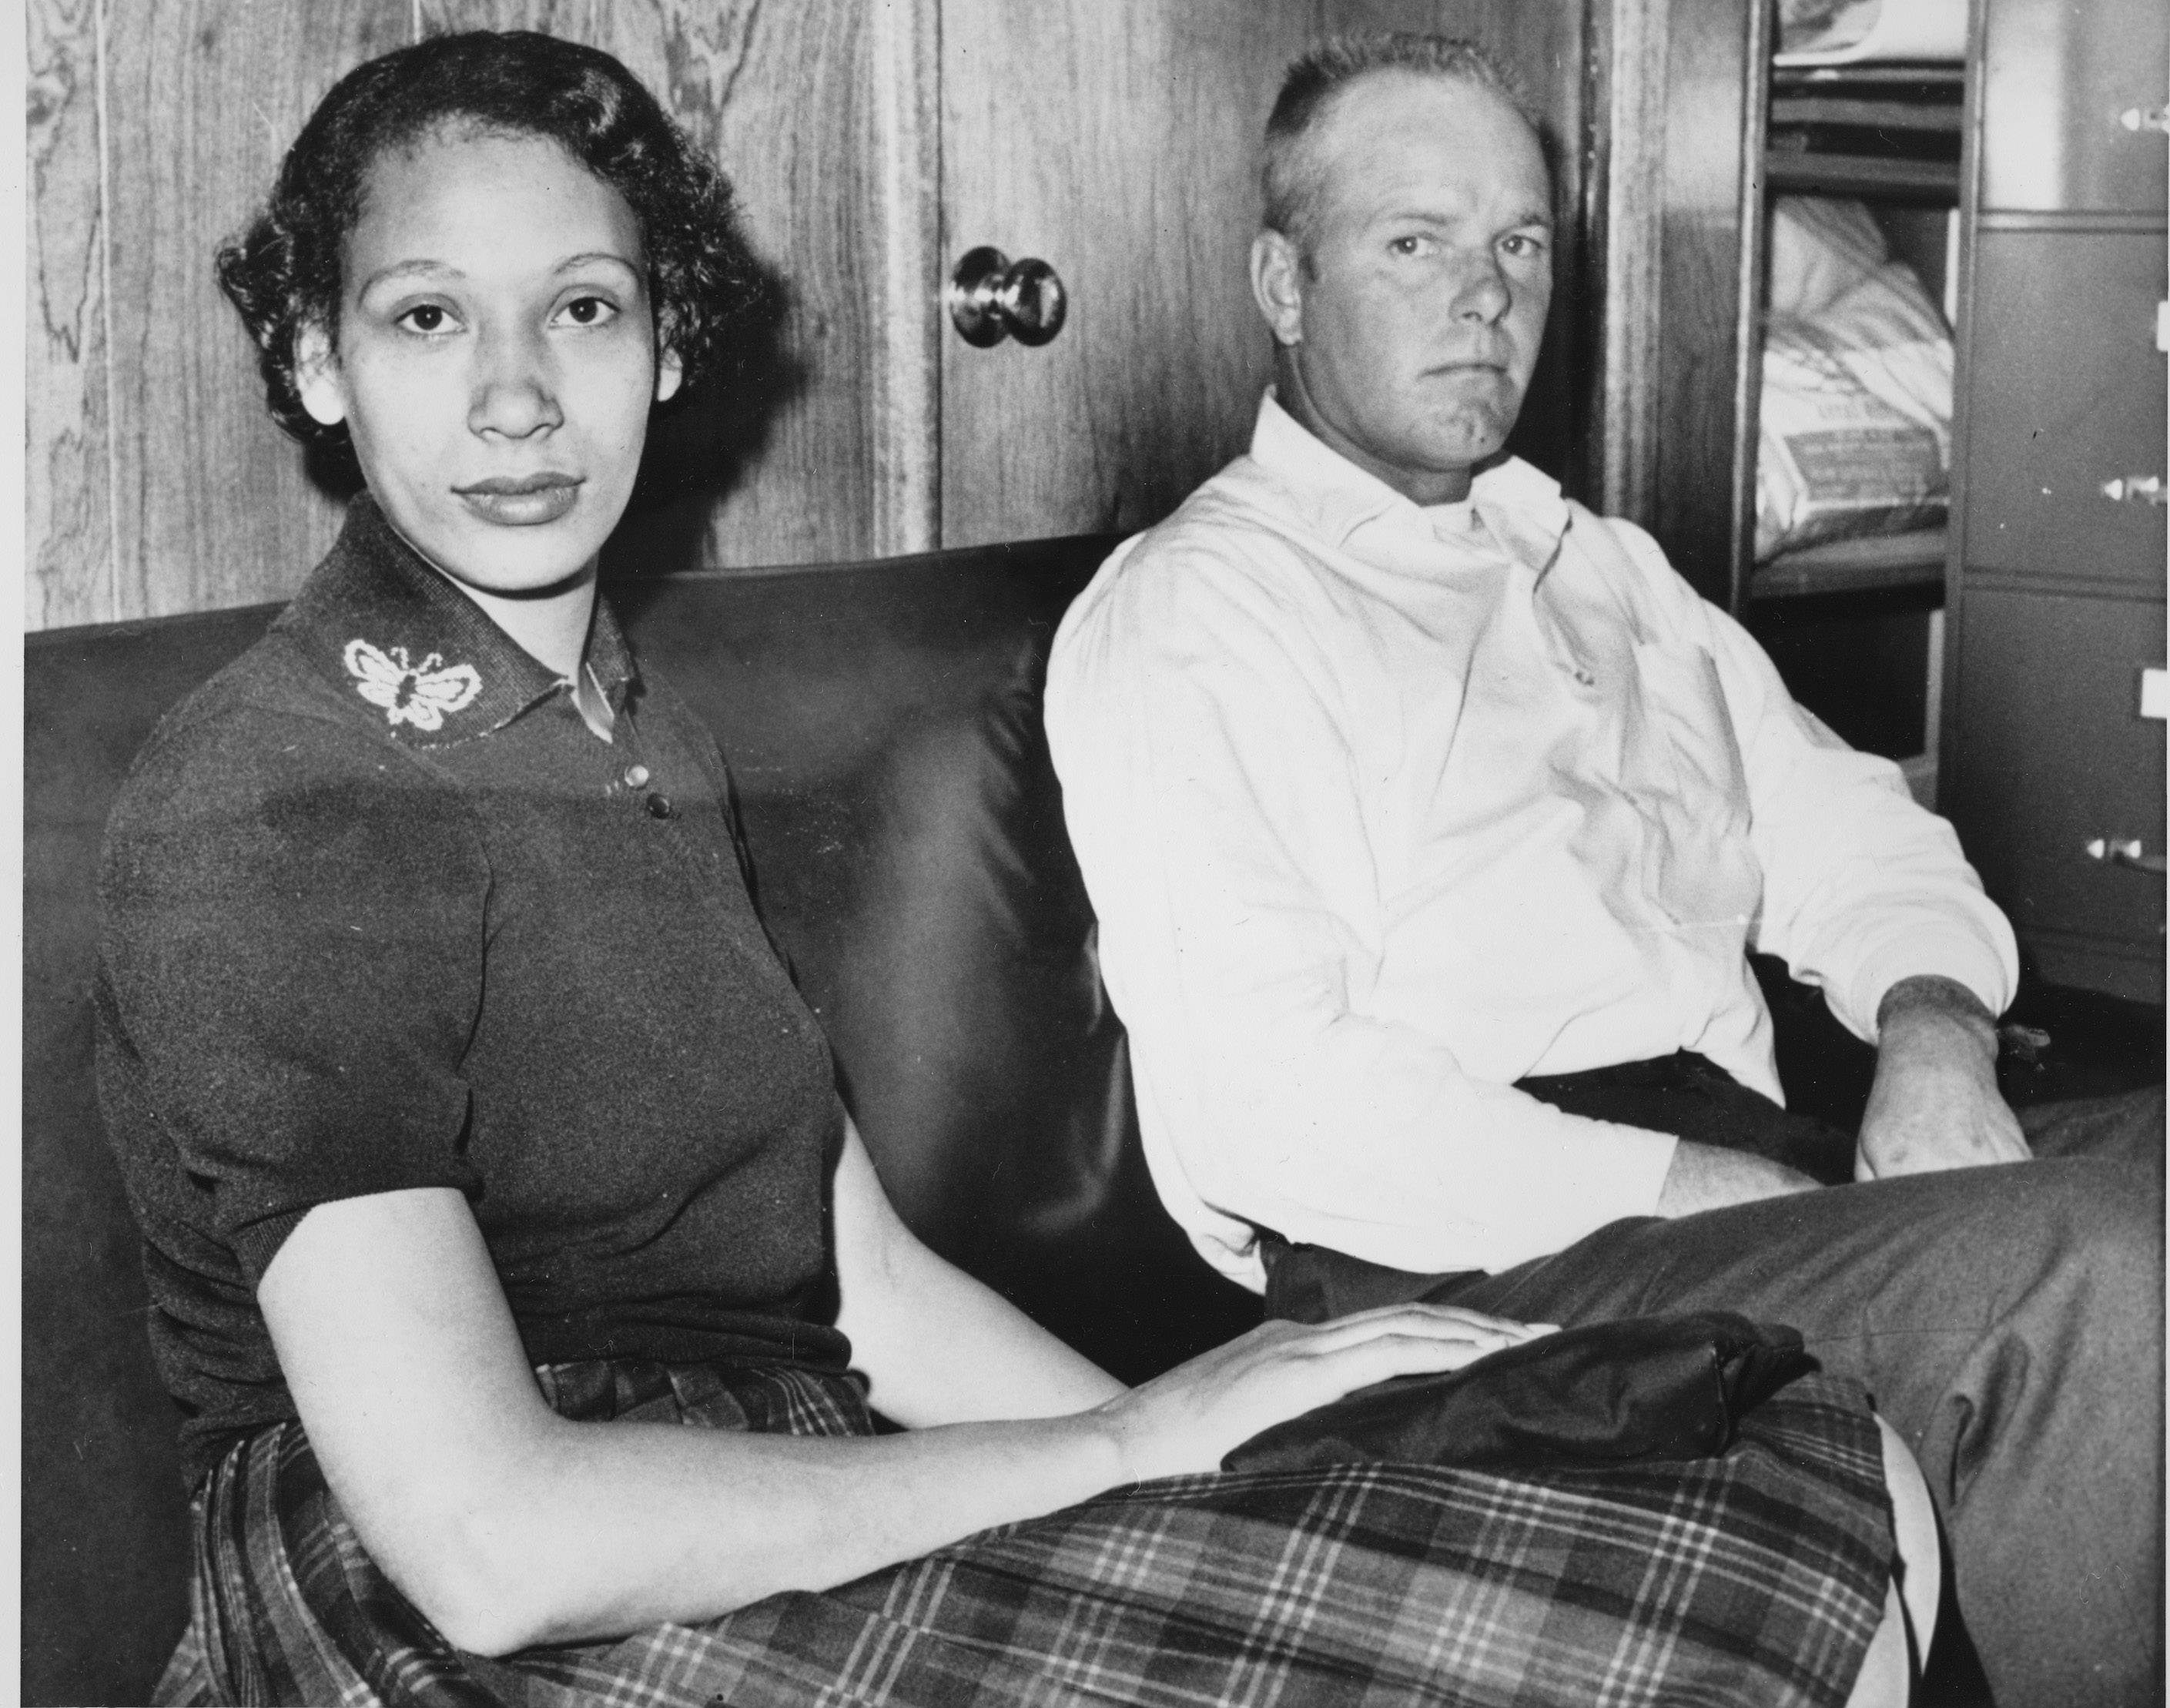 ASSOCIATED PRESSIn 1958, Mildred and Richard Loving married in Washington. After they returned to Virginia, police raided their home and arrested them. They avoided jail time by agreeing to leave Virginia -- the only home they had known -- for 25 years. The couple is seen in this file photo from 1965.